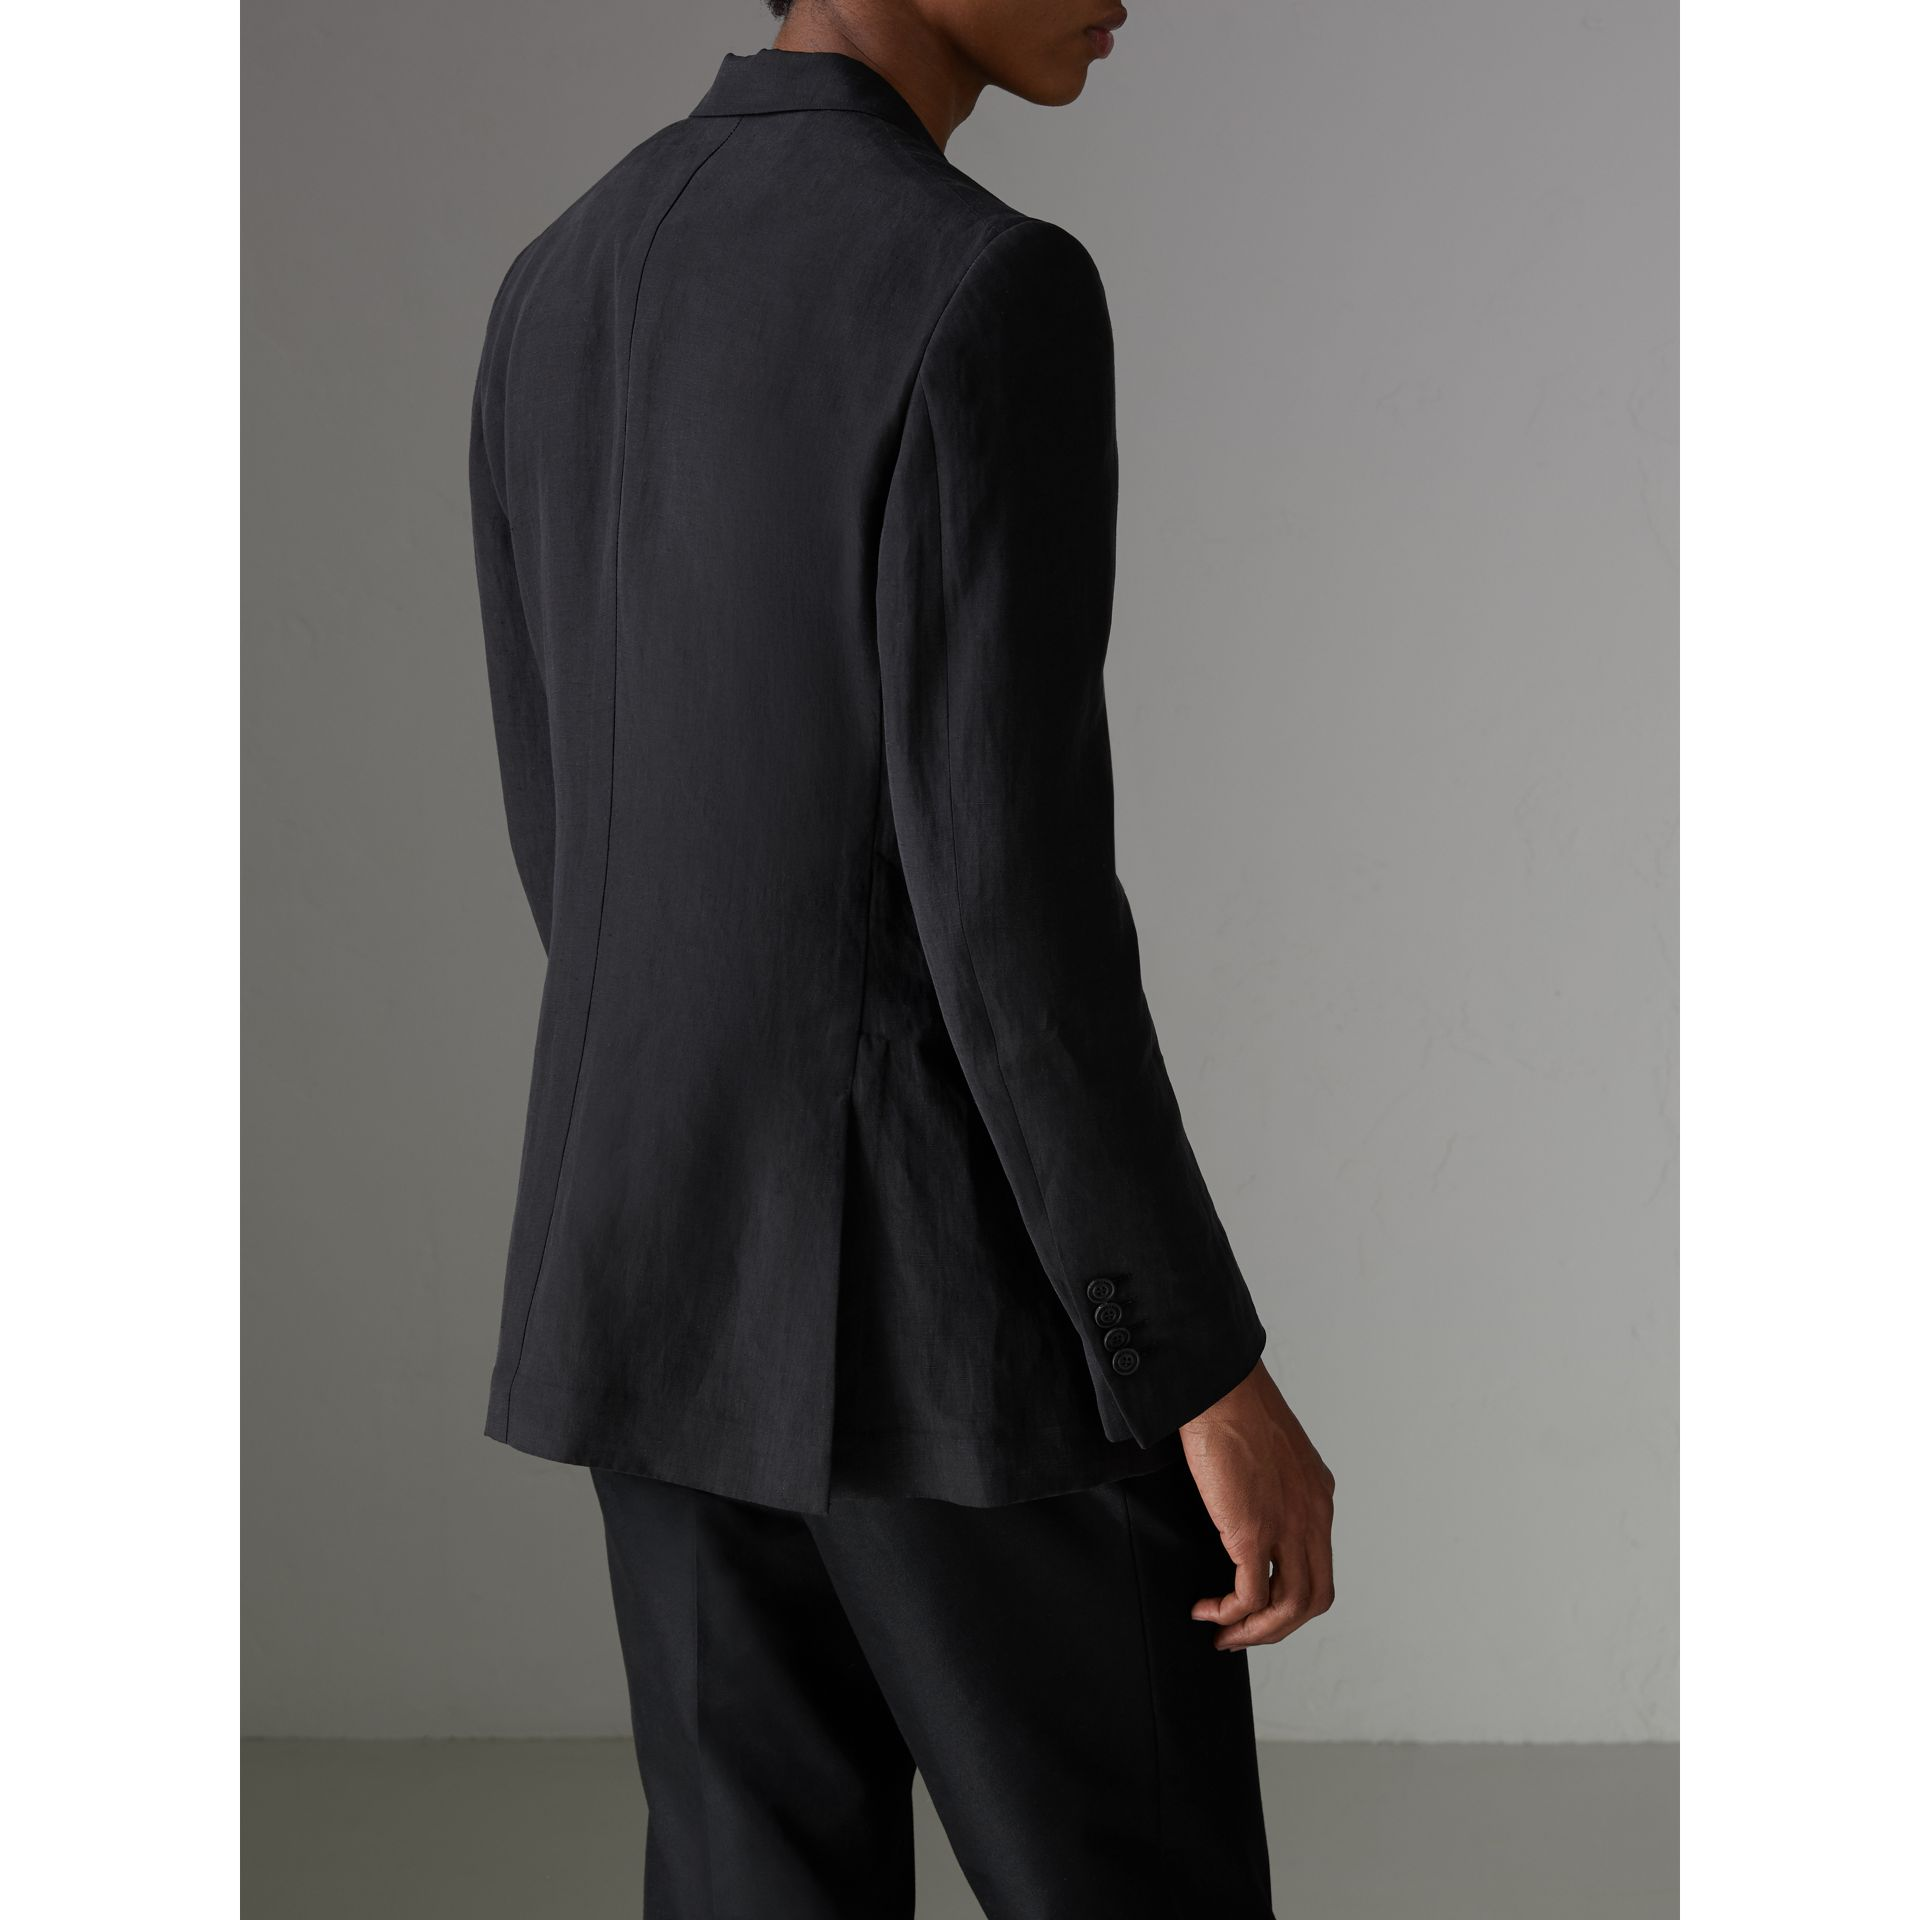 Slim Fit Linen Silk Evening Jacket in Black - Men | Burberry - gallery image 2